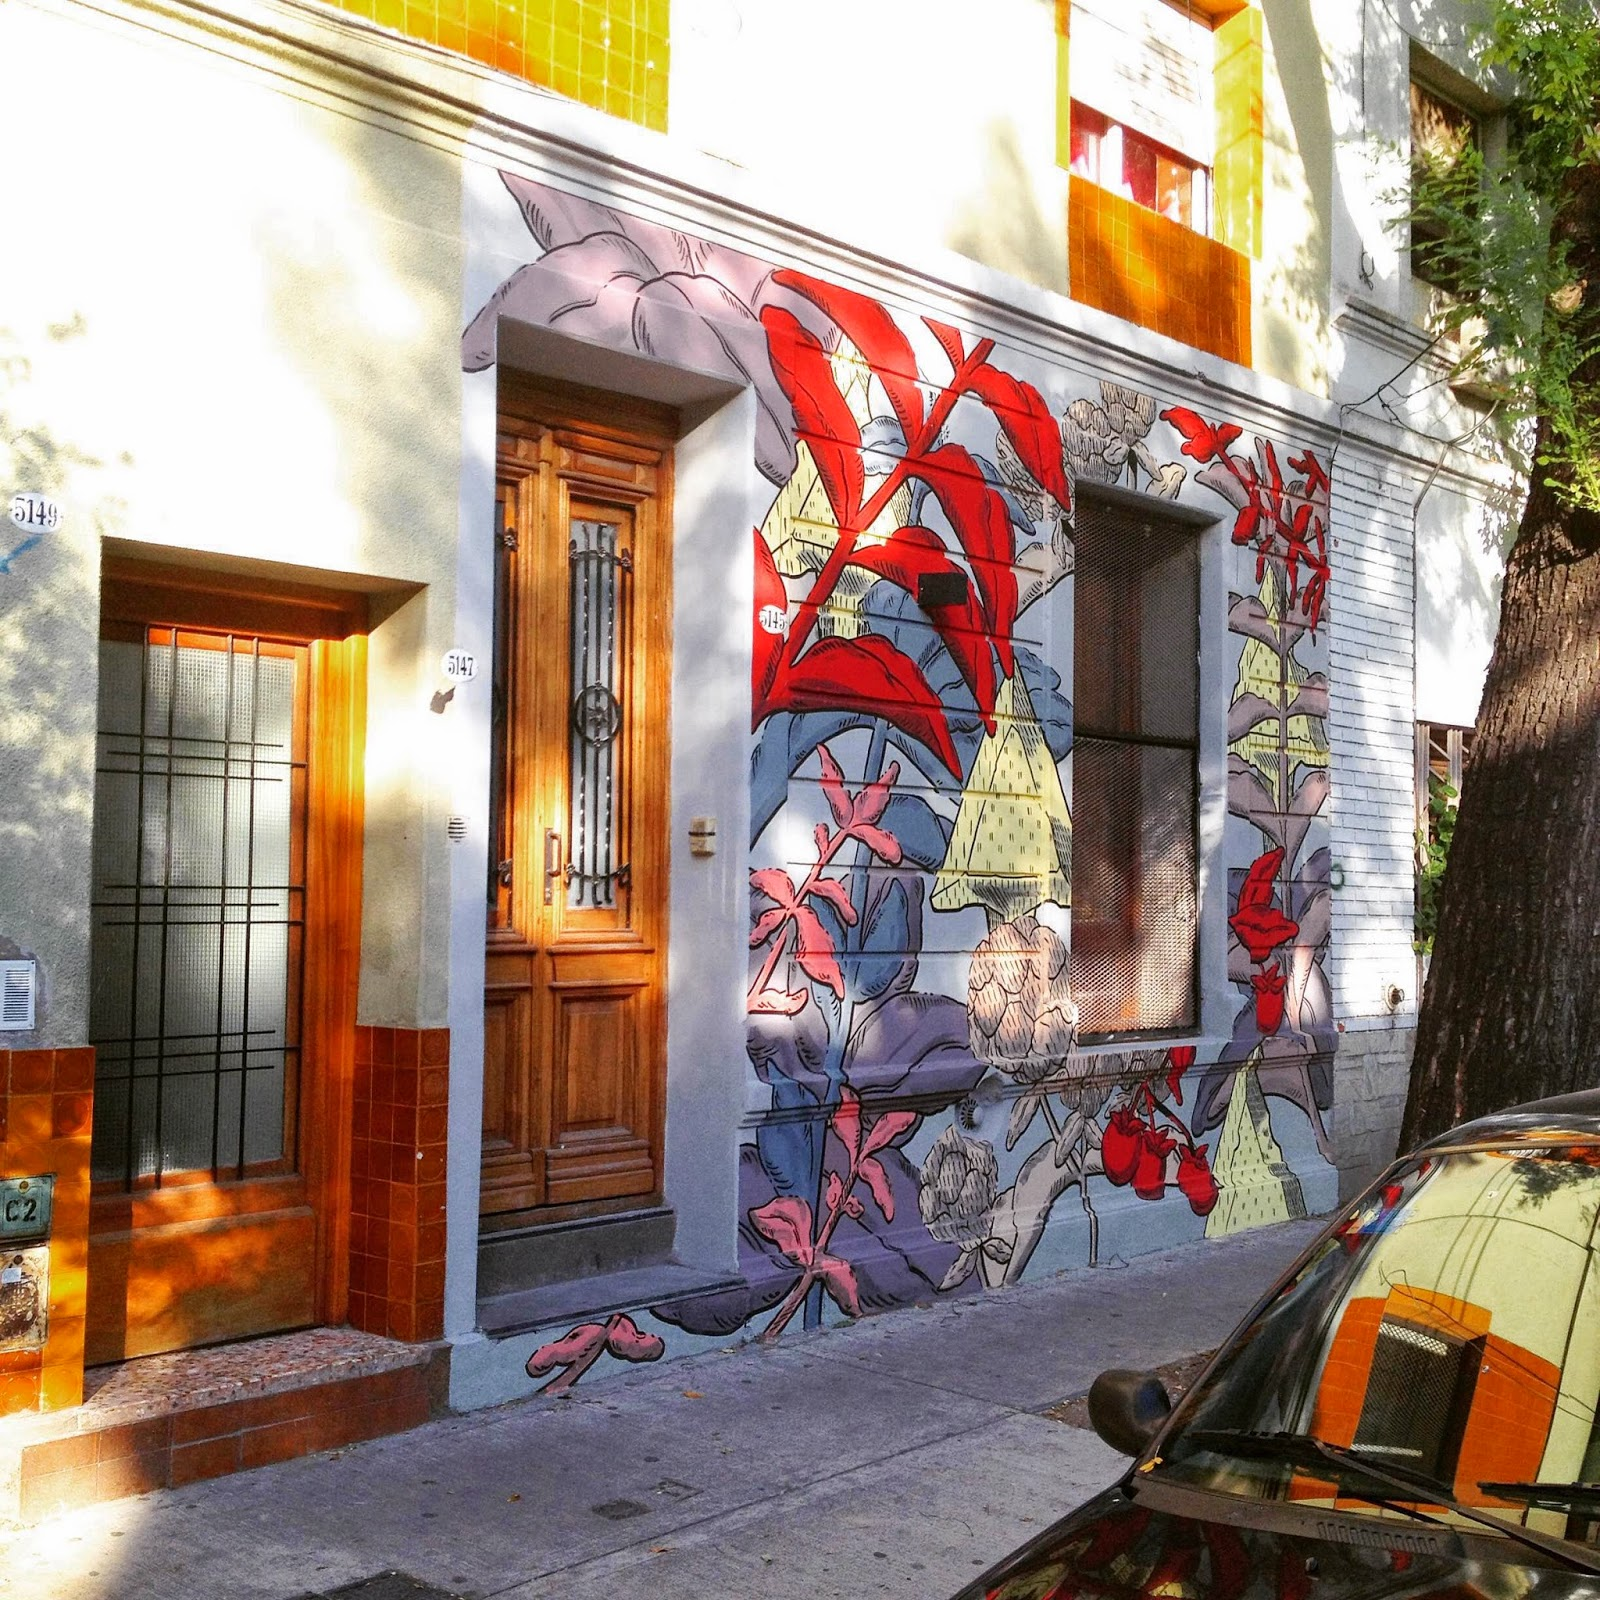 Our friend Pastel is currently traveling through South America where he just finished working on new pieces in Argentina and Uruguay.